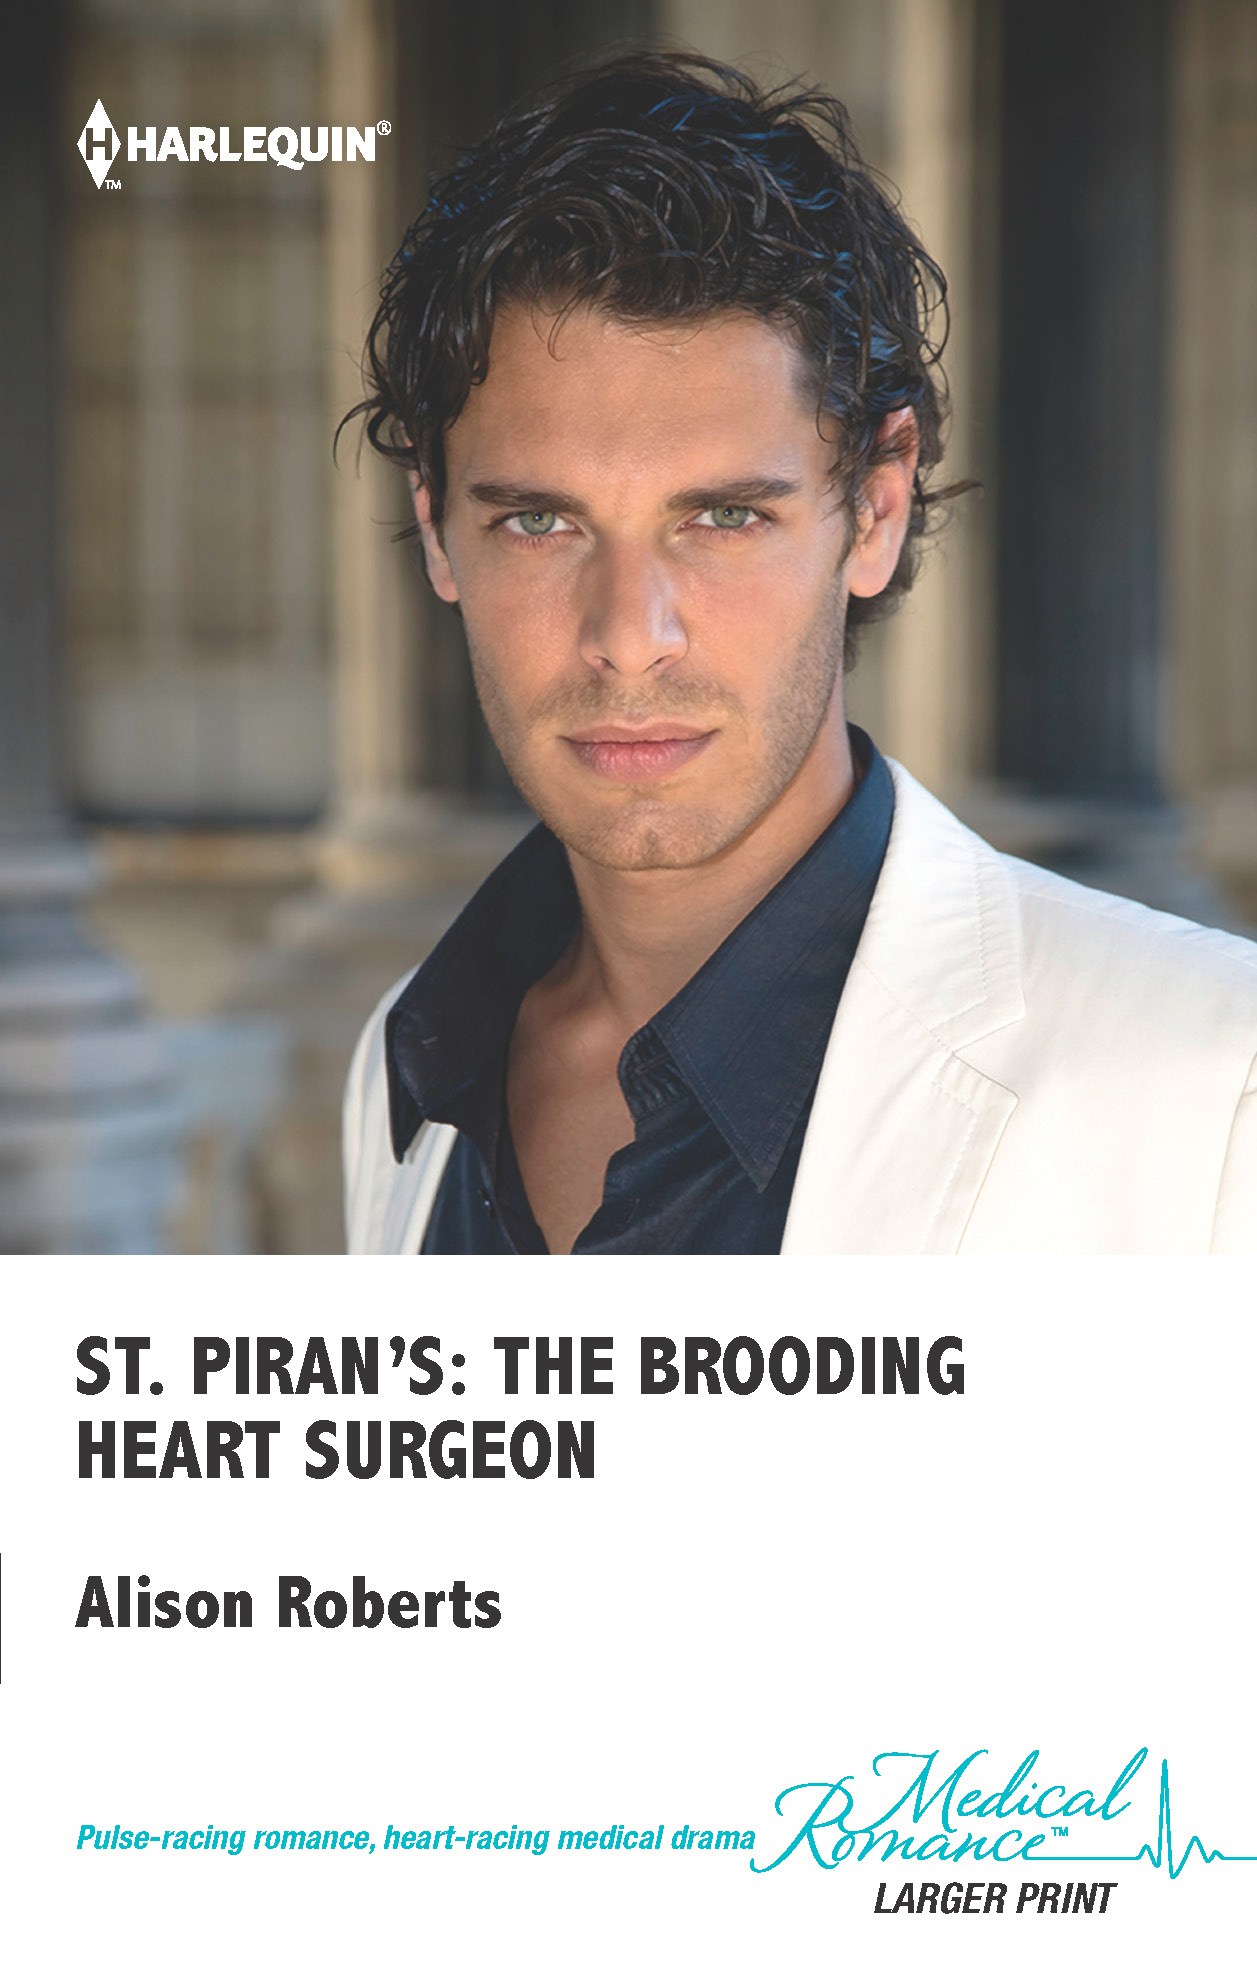 St. Piran's: The Brooding Heart Surgeon